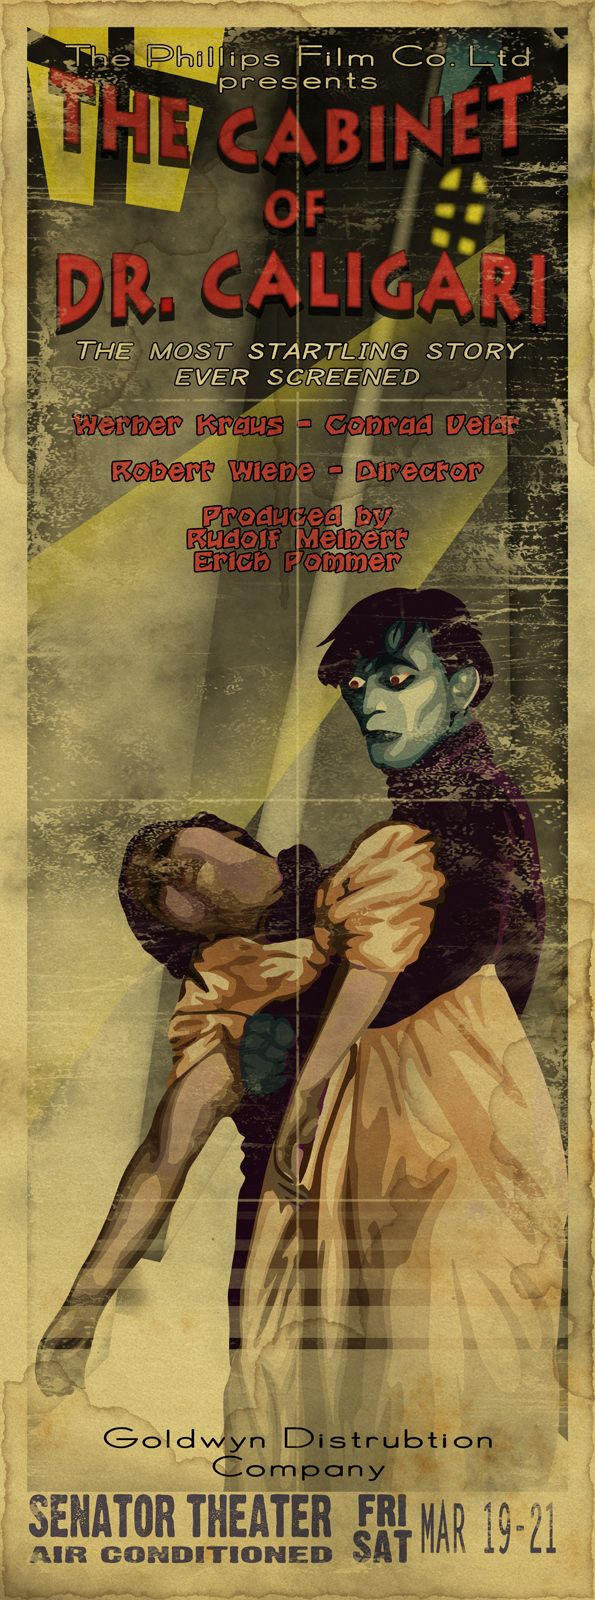 The Cabinet of Dr. Caligari (1920).